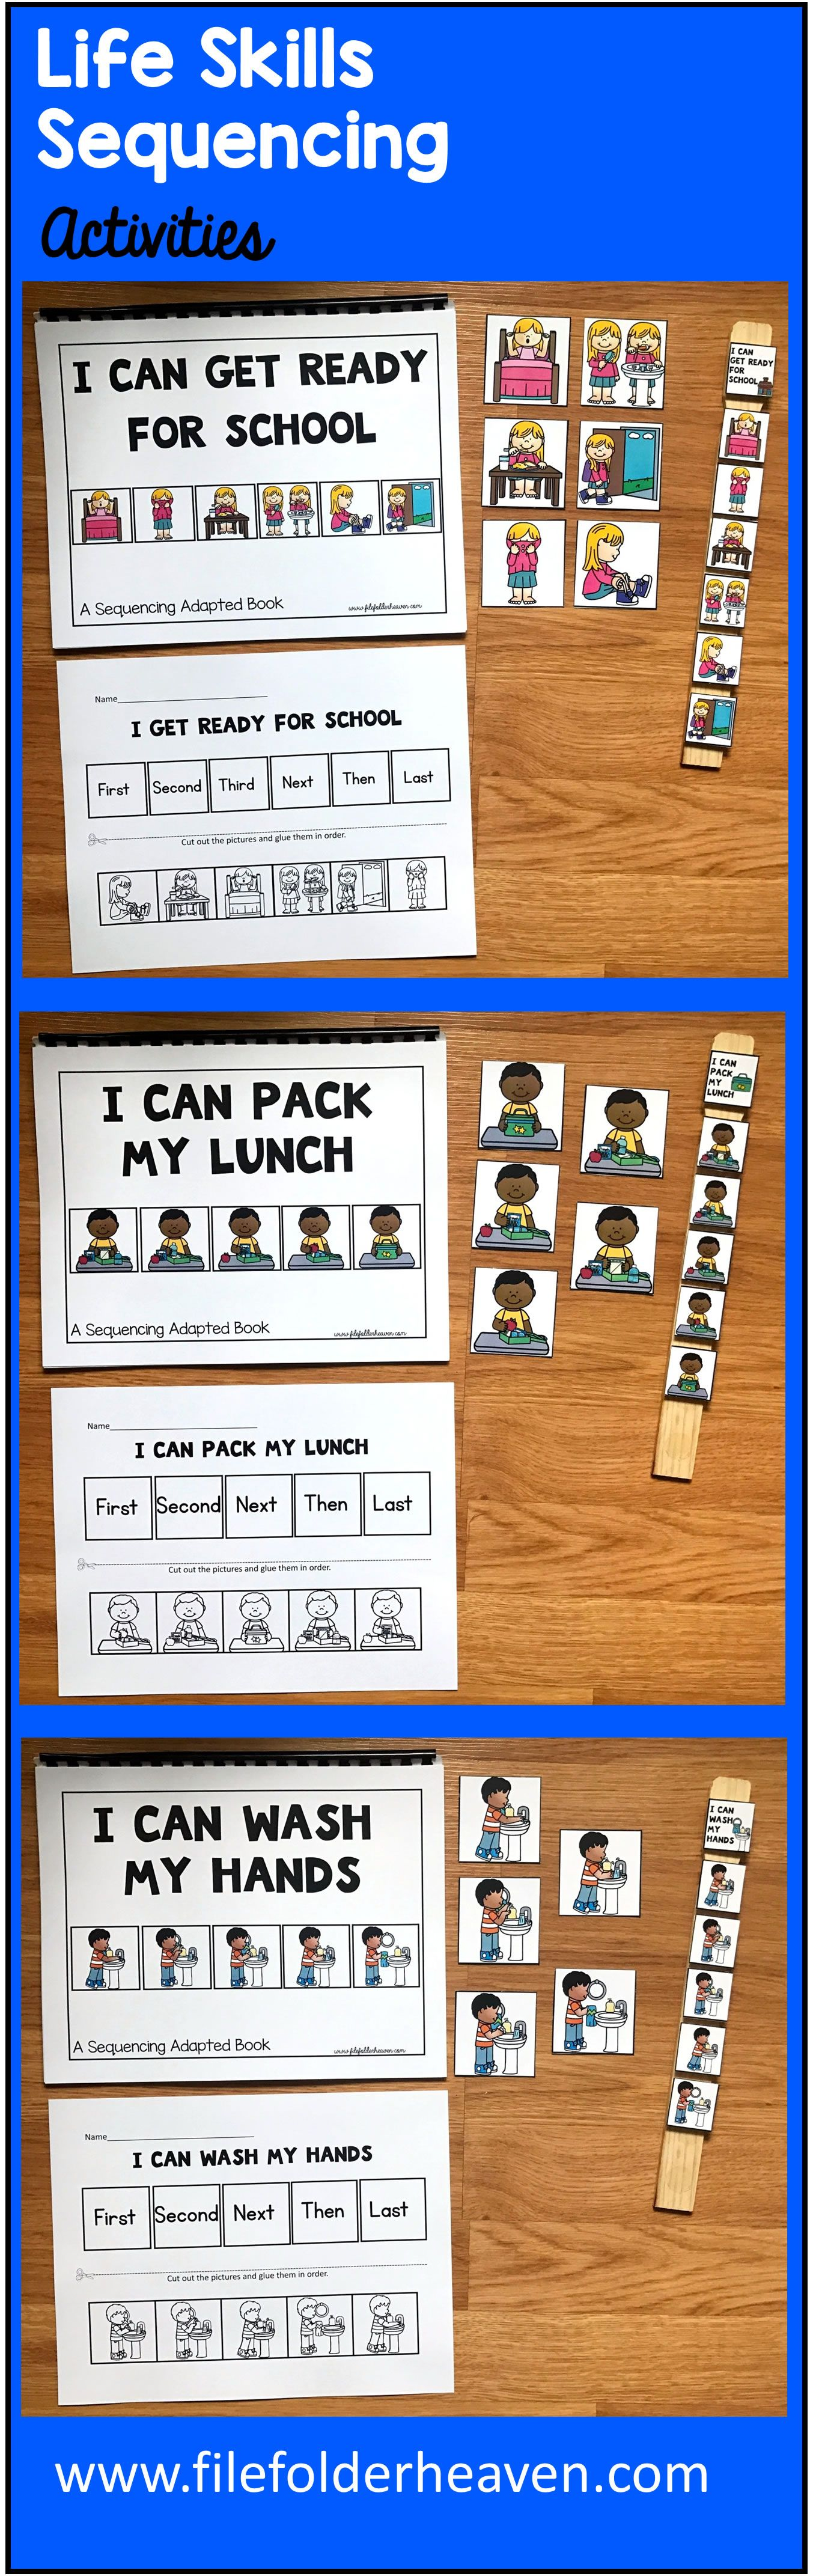 These Life Skills Sequencing Activities Include 5 Adapted